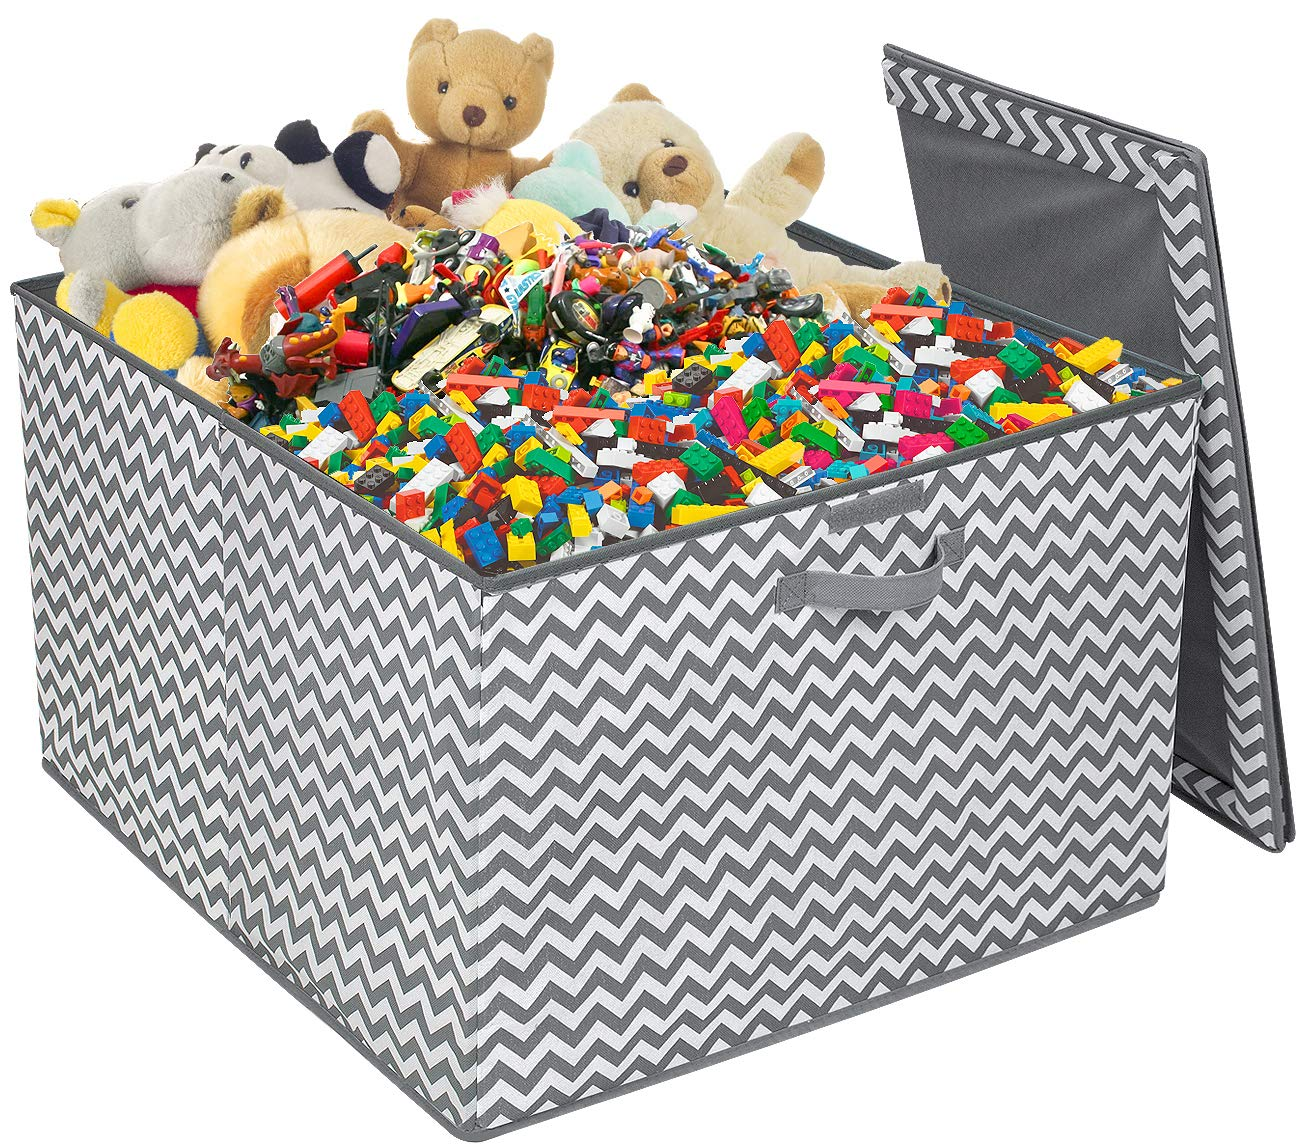 Sorbus Square Toy Chest with Flip-Top Lid, Kids Collapsible Storage for Nursery, Playroom, Closet, Home Organization, Large (Gray/White Chevron) by Sorbus